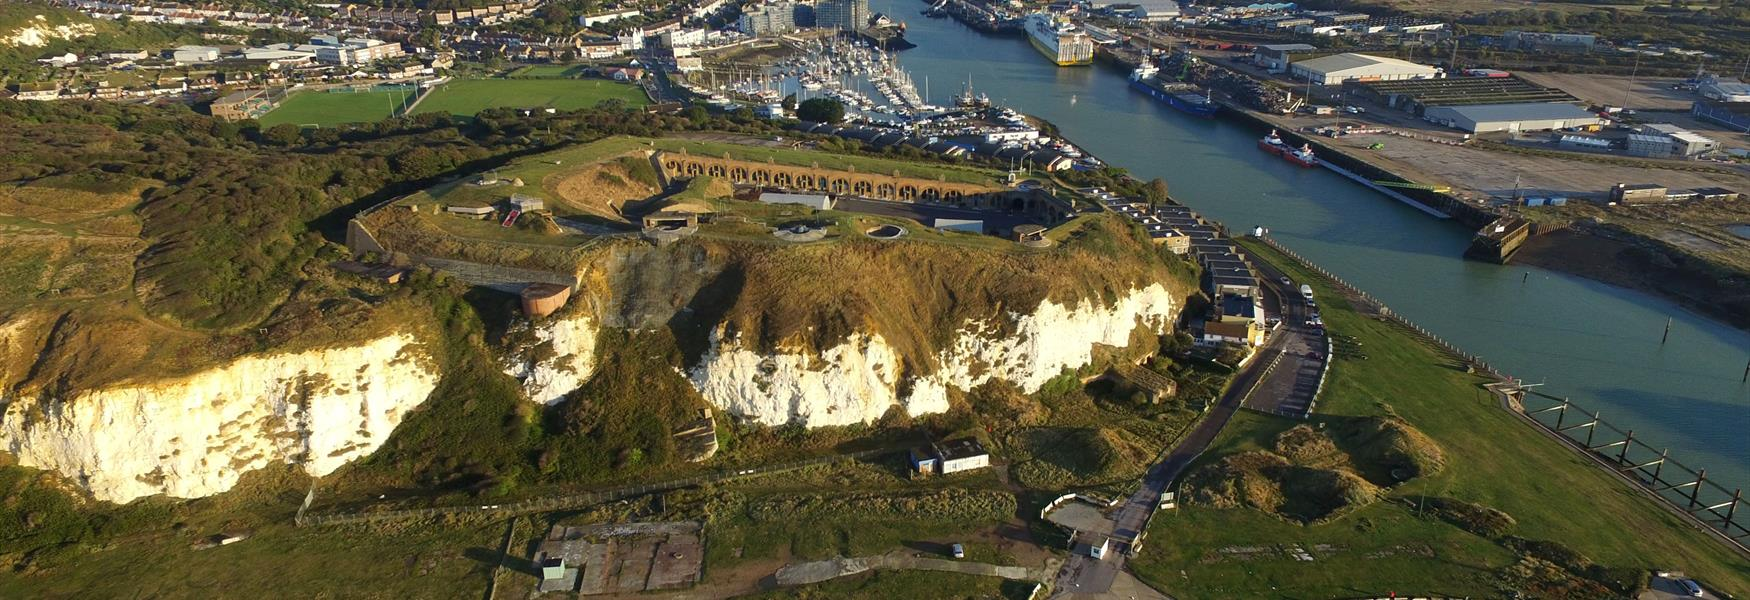 Newhaven Fort - Peter Cripps